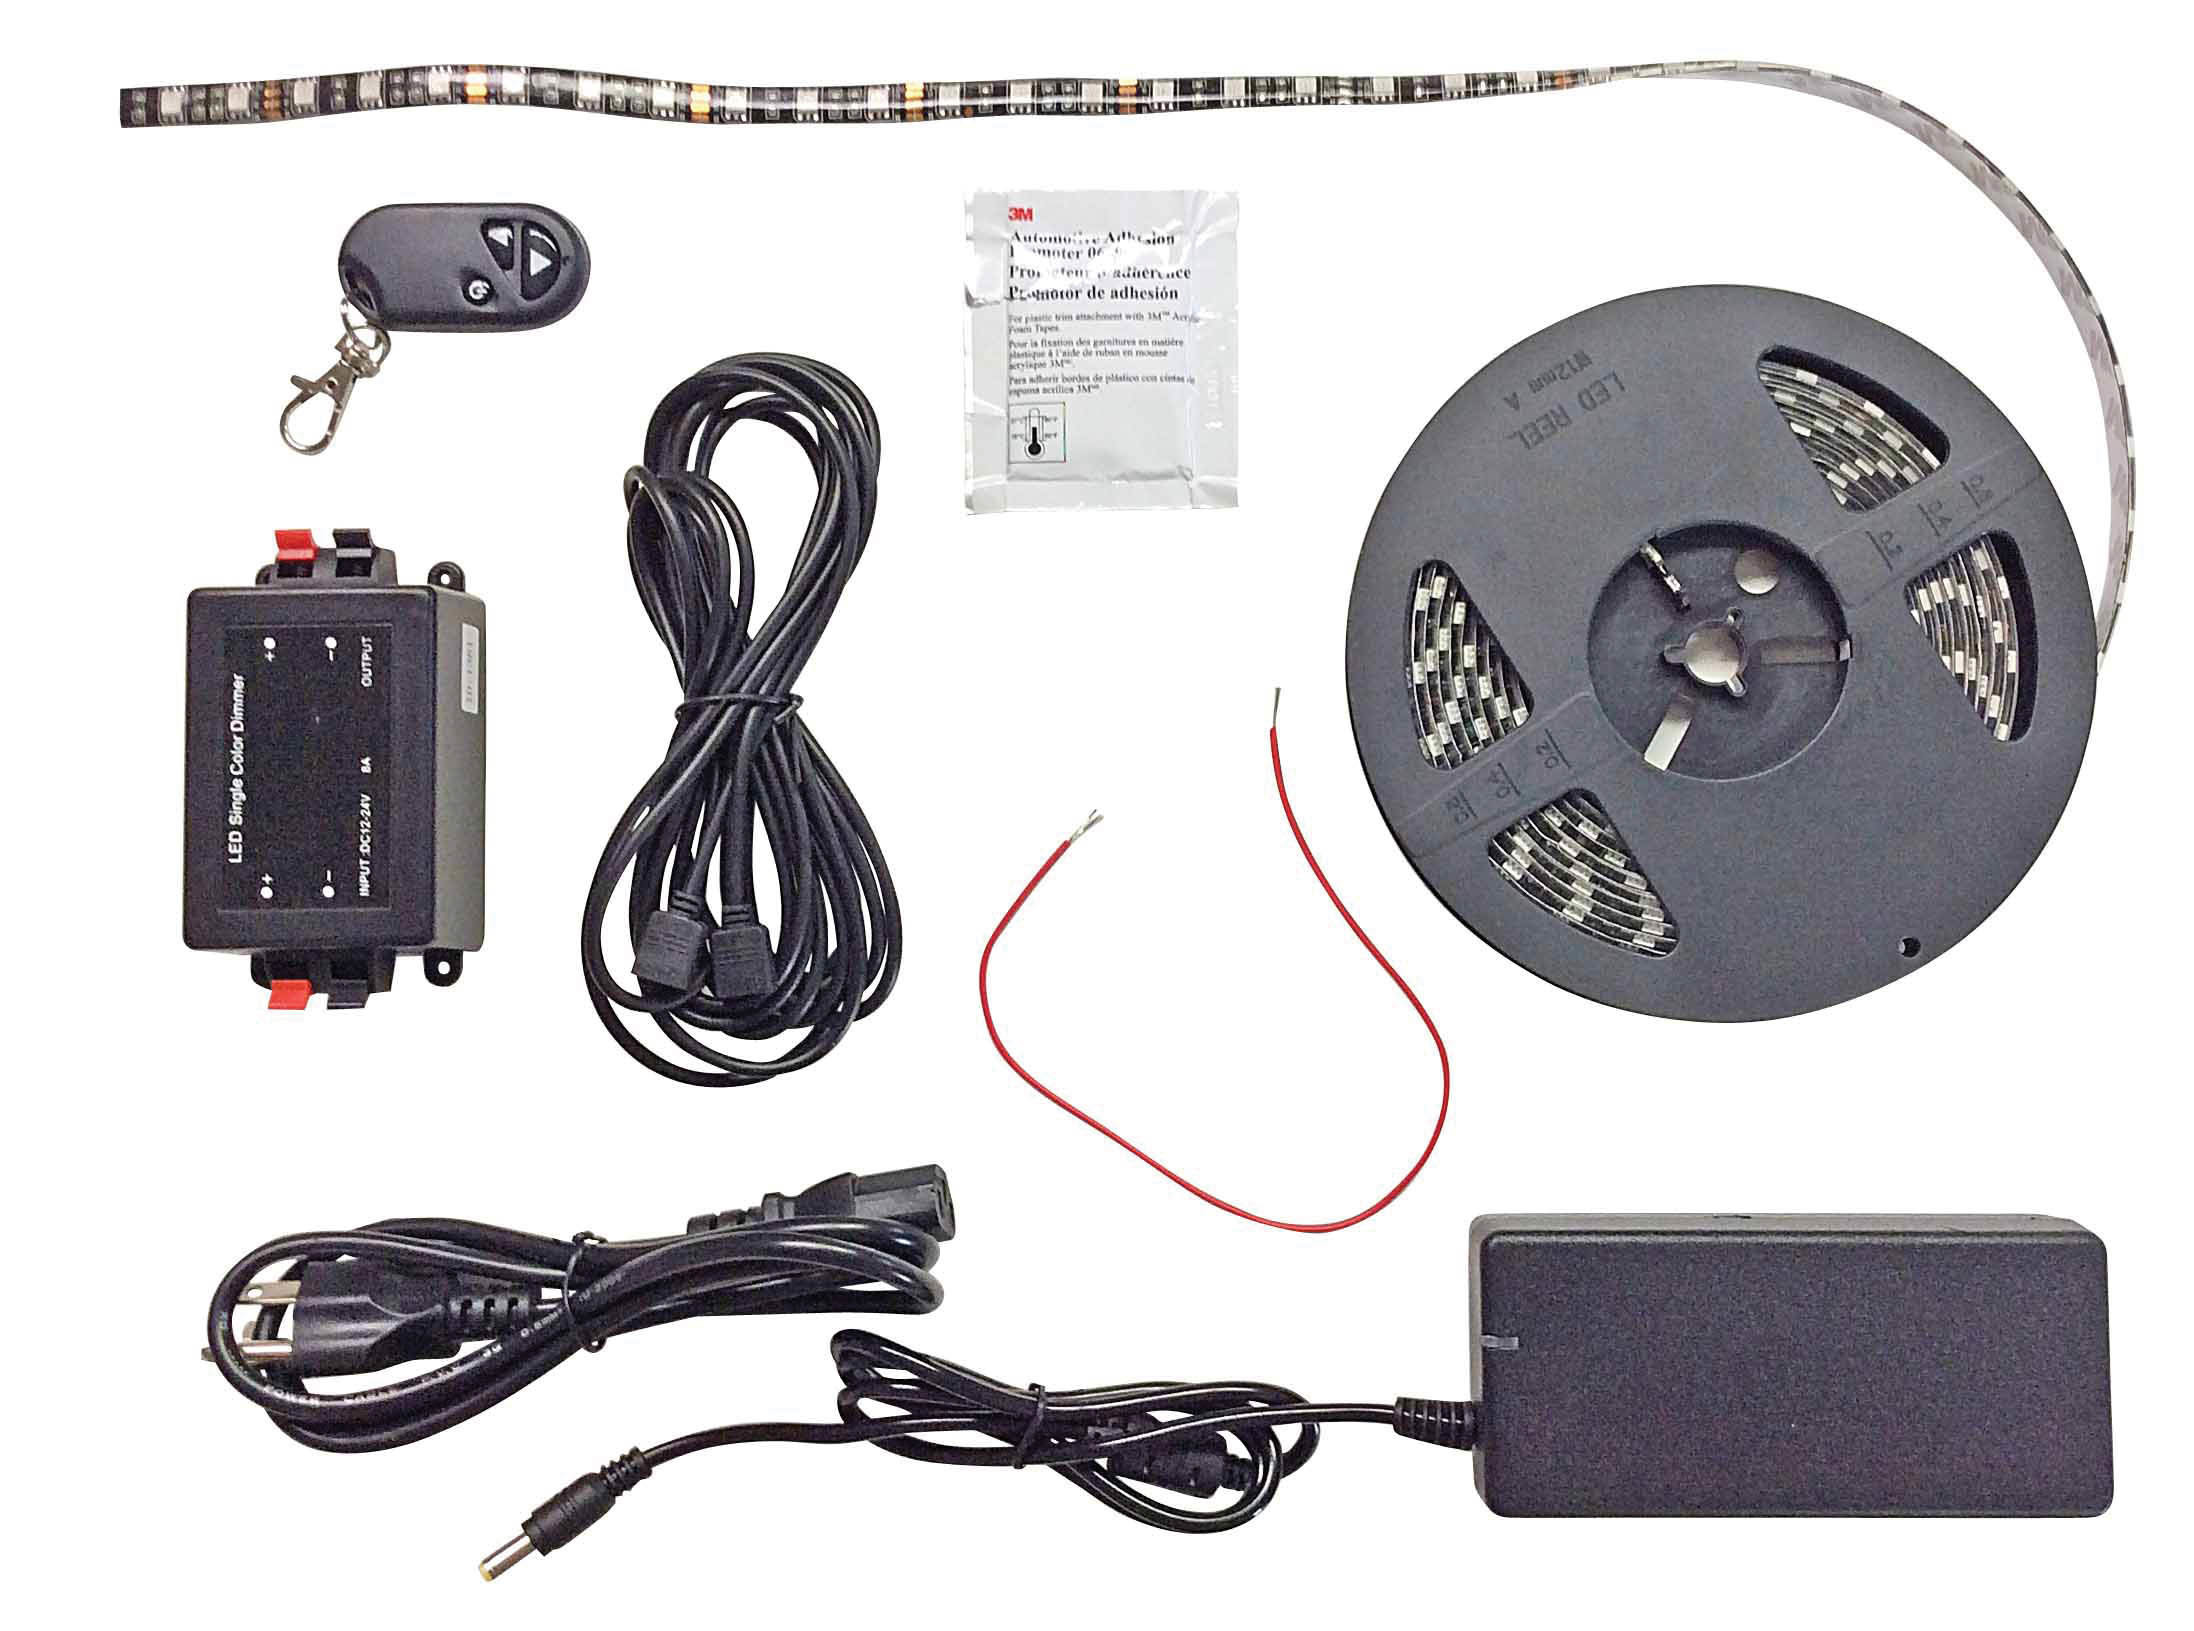 Black-Backed 16' LED Strip Light Kit - Blue Light Only 52773